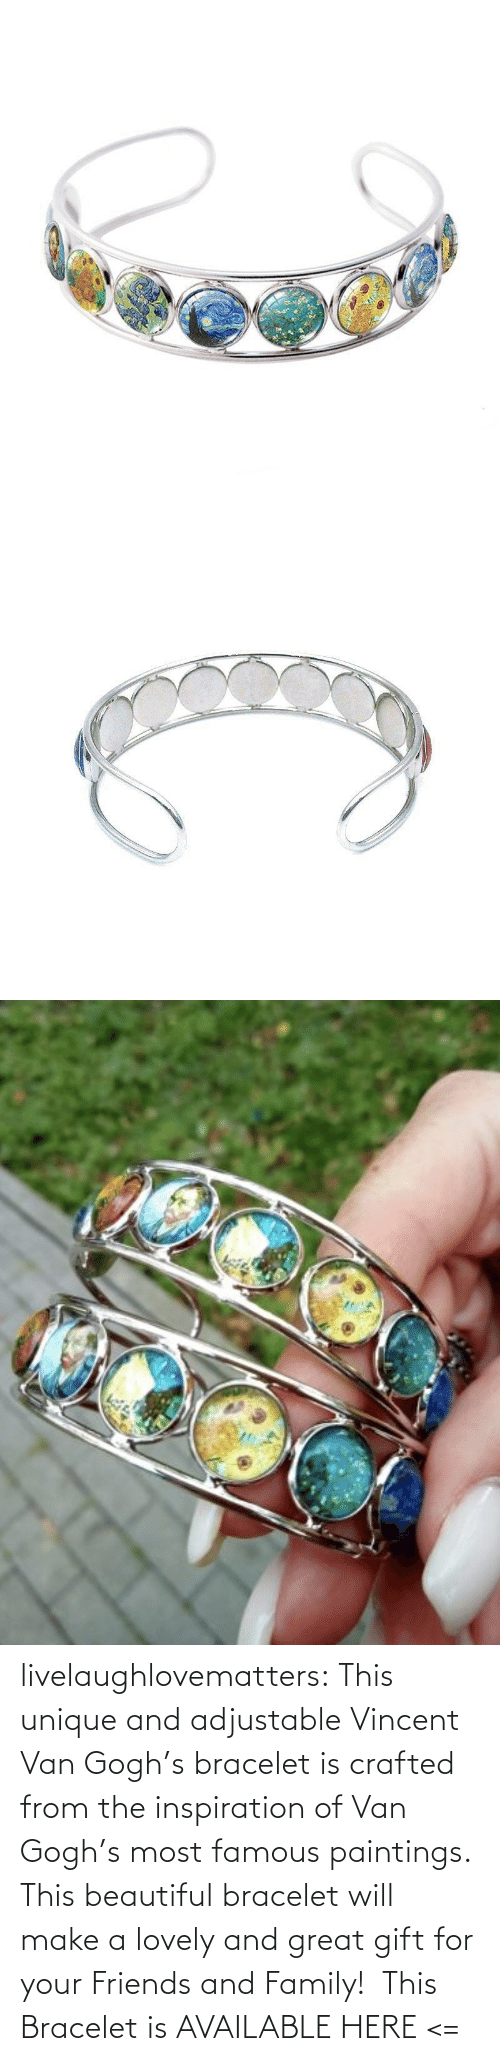 beautiful: livelaughlovematters: This unique and adjustableVincent Van Gogh's bracelet is crafted from the inspiration of Van Gogh's most famous paintings. This beautiful bracelet will make a lovely and great gift for your Friends and Family! This Bracelet is AVAILABLE HERE <=